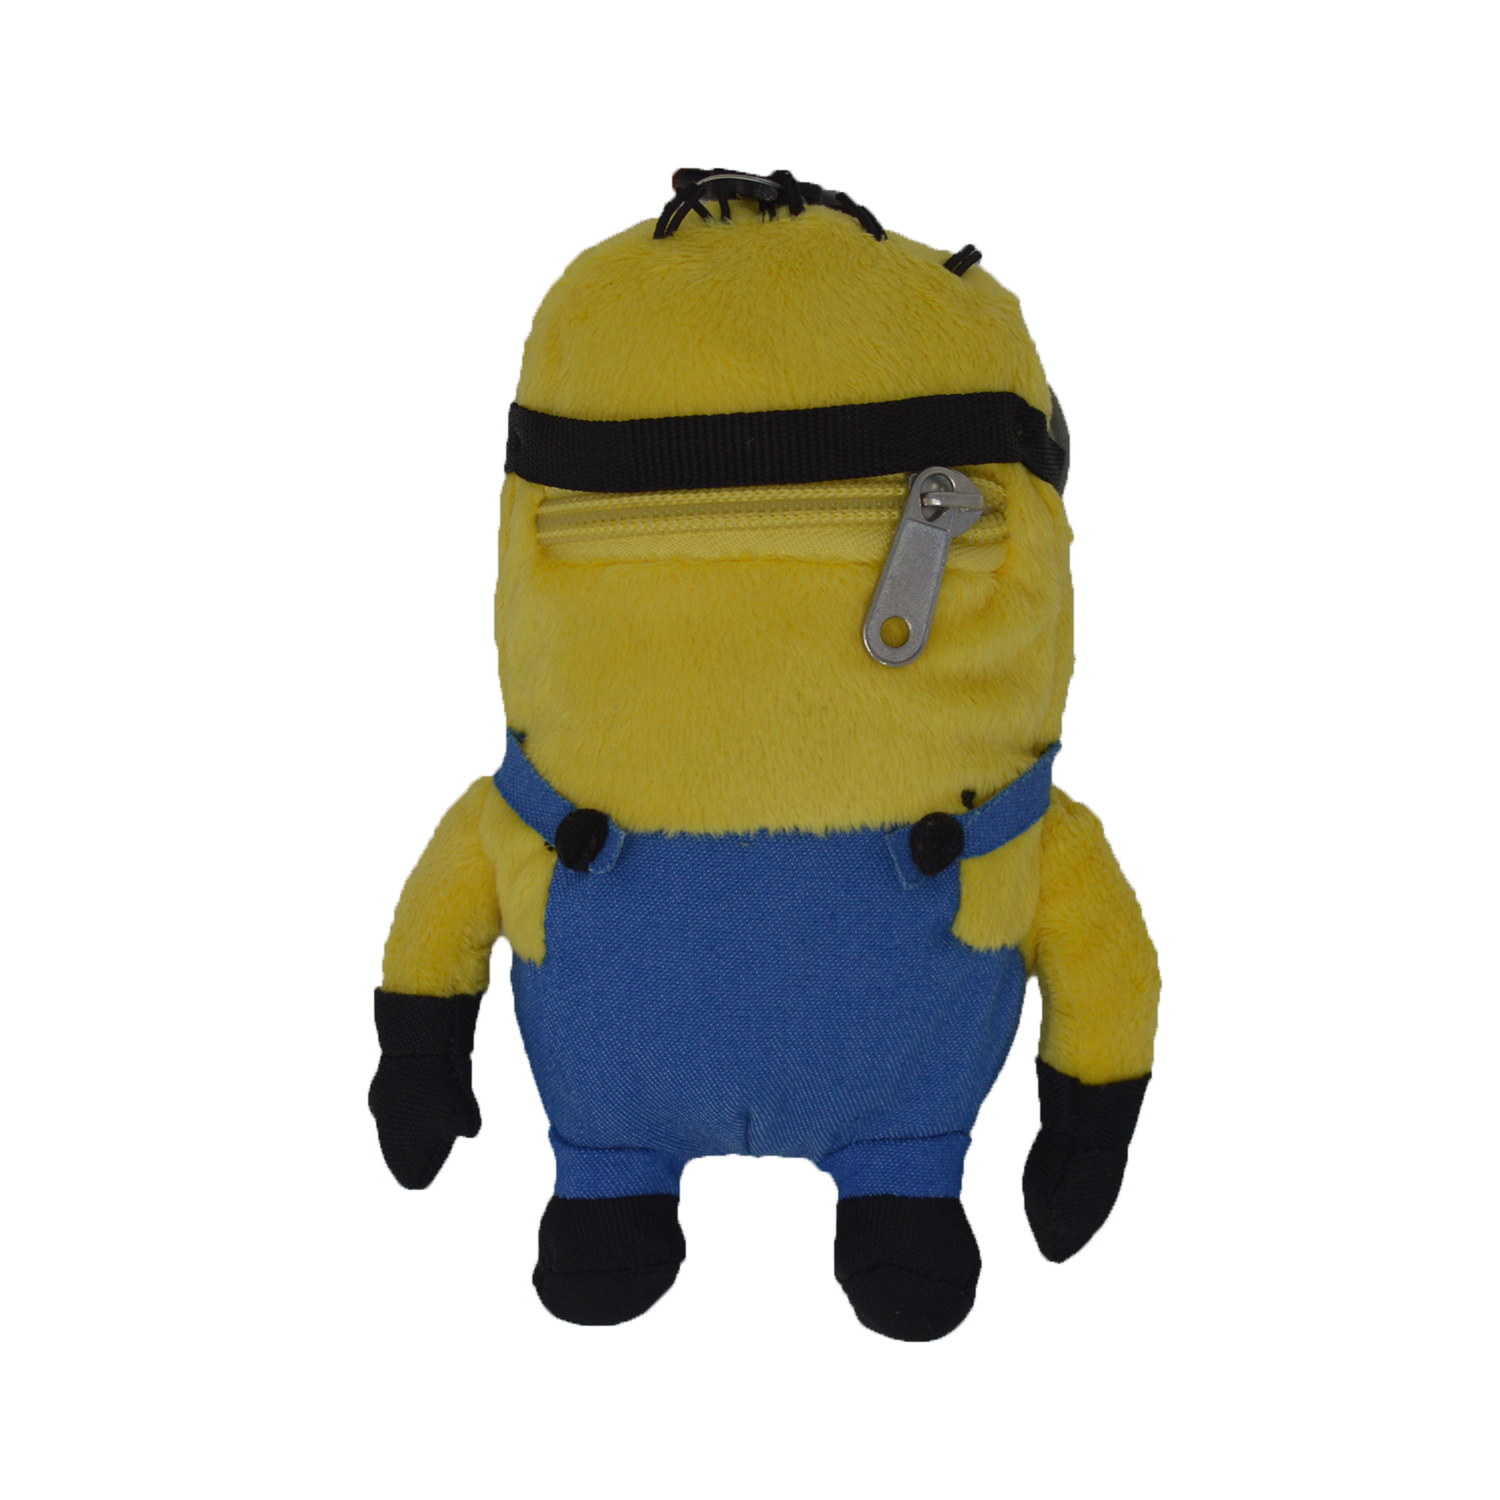 Cartoon-Plush-Coin-Clip-Toy-Bag-with-Zipper-for-Backpacks-Multiple-Styles thumbnail 10